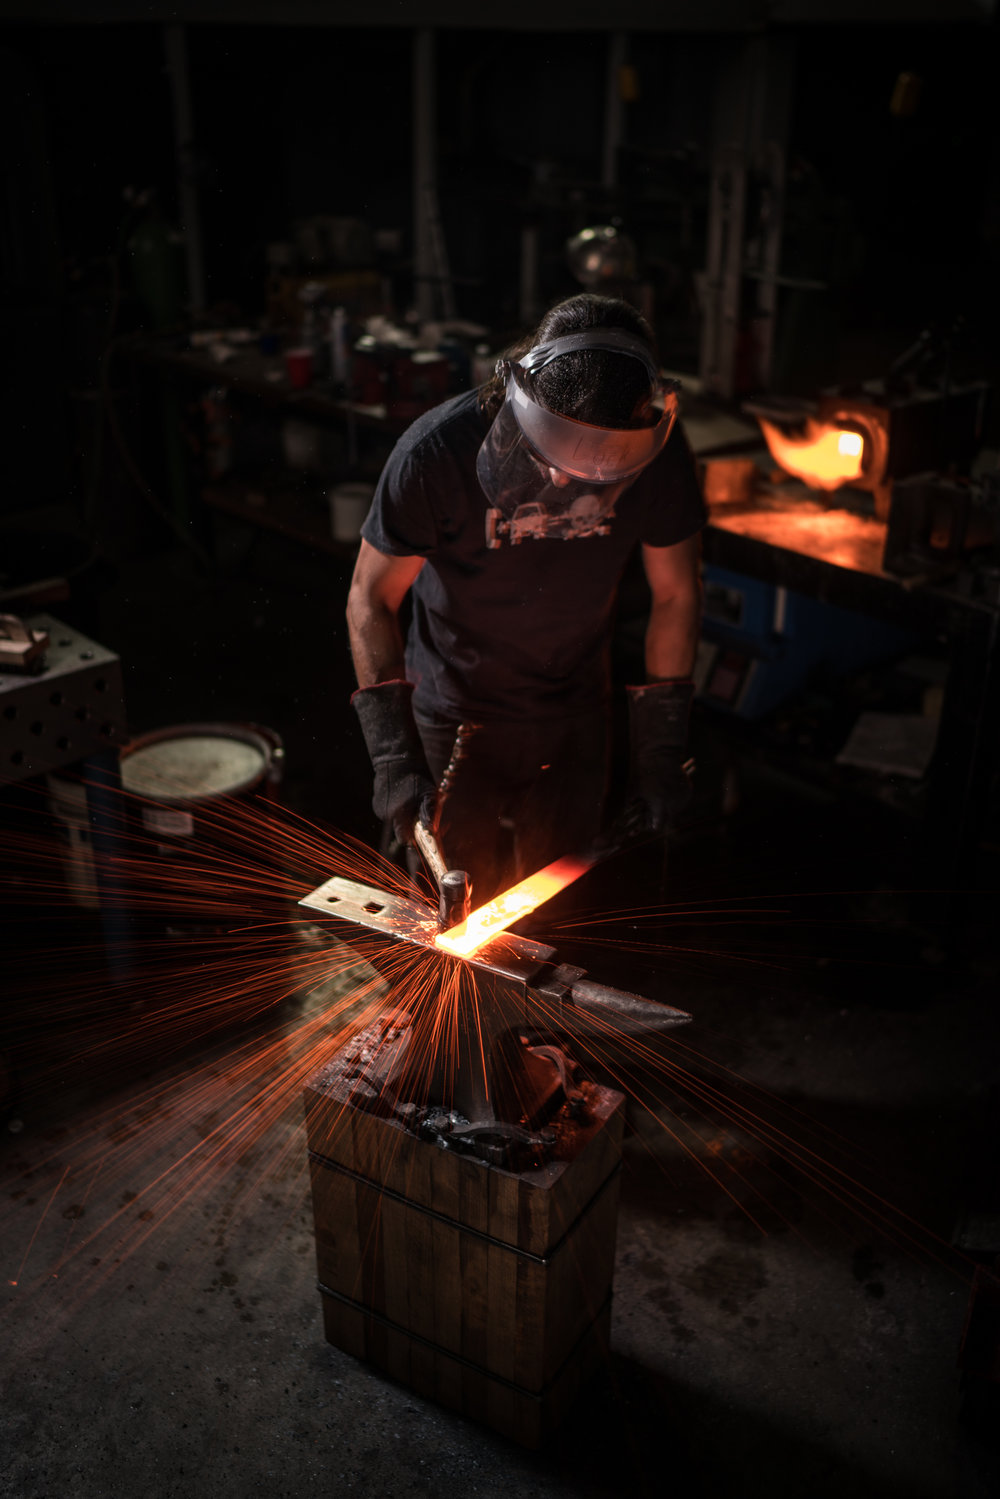 Here, Lock is striking a piece of damascus steel in the early stages of forging.